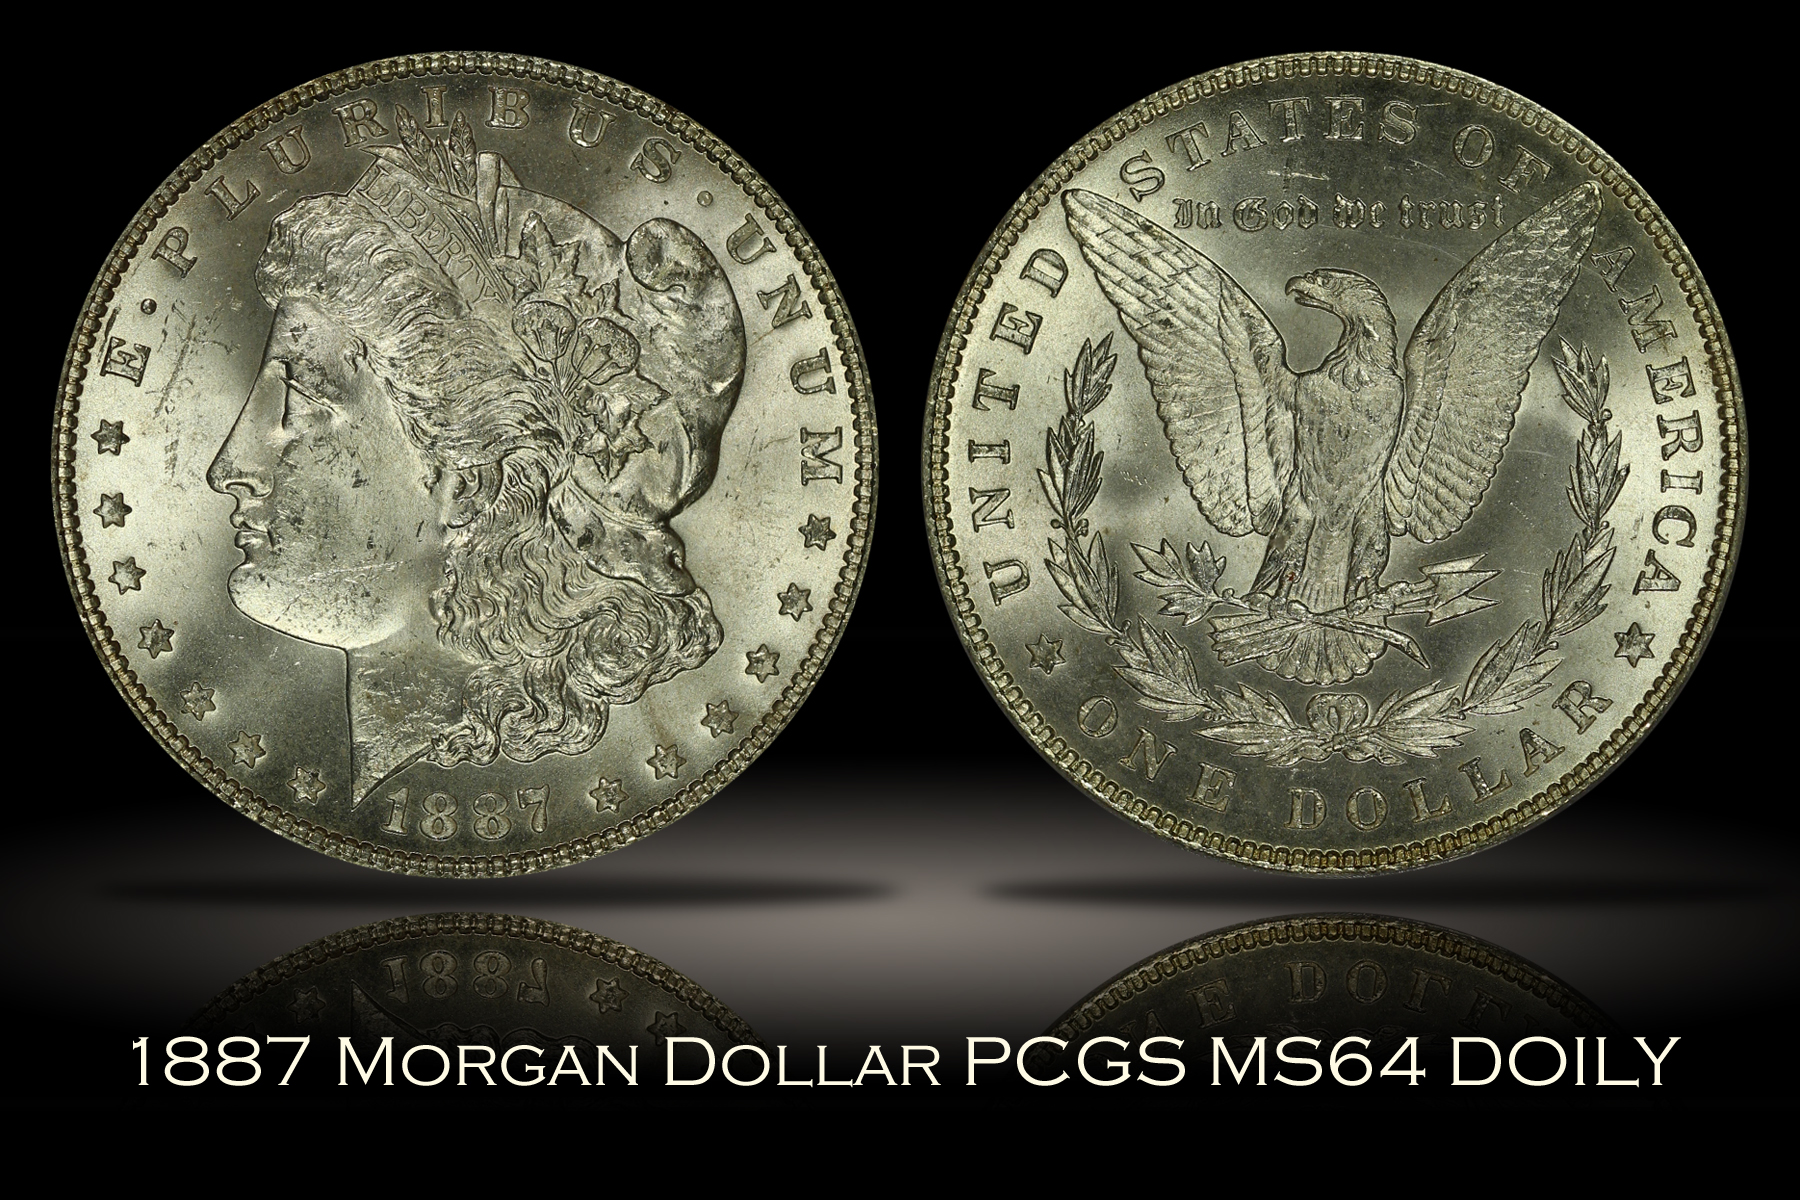 1887 Morgan Dollar PCGS MS64 DOILY